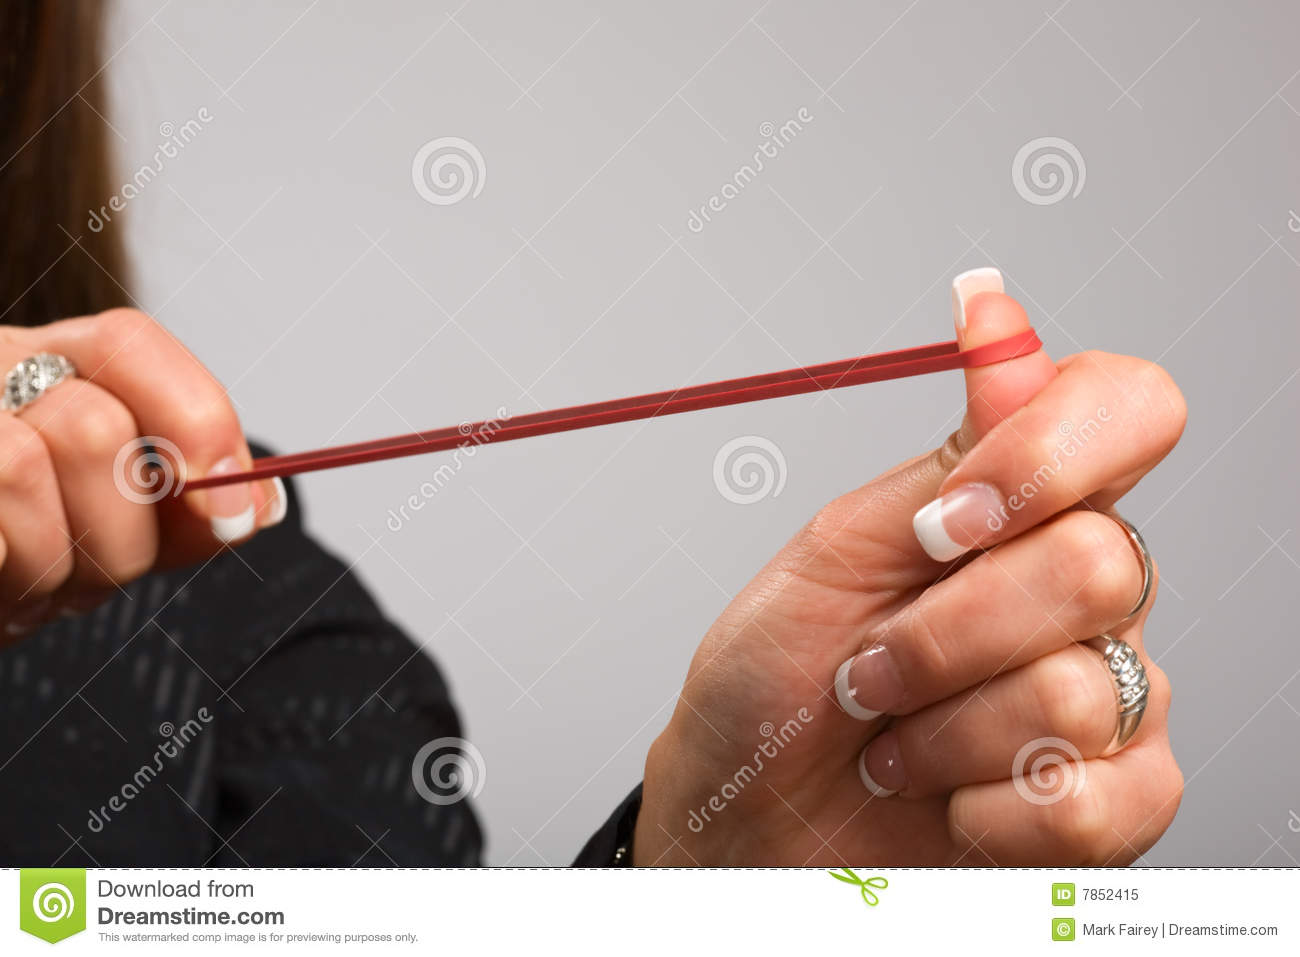 Take aim with rubber band